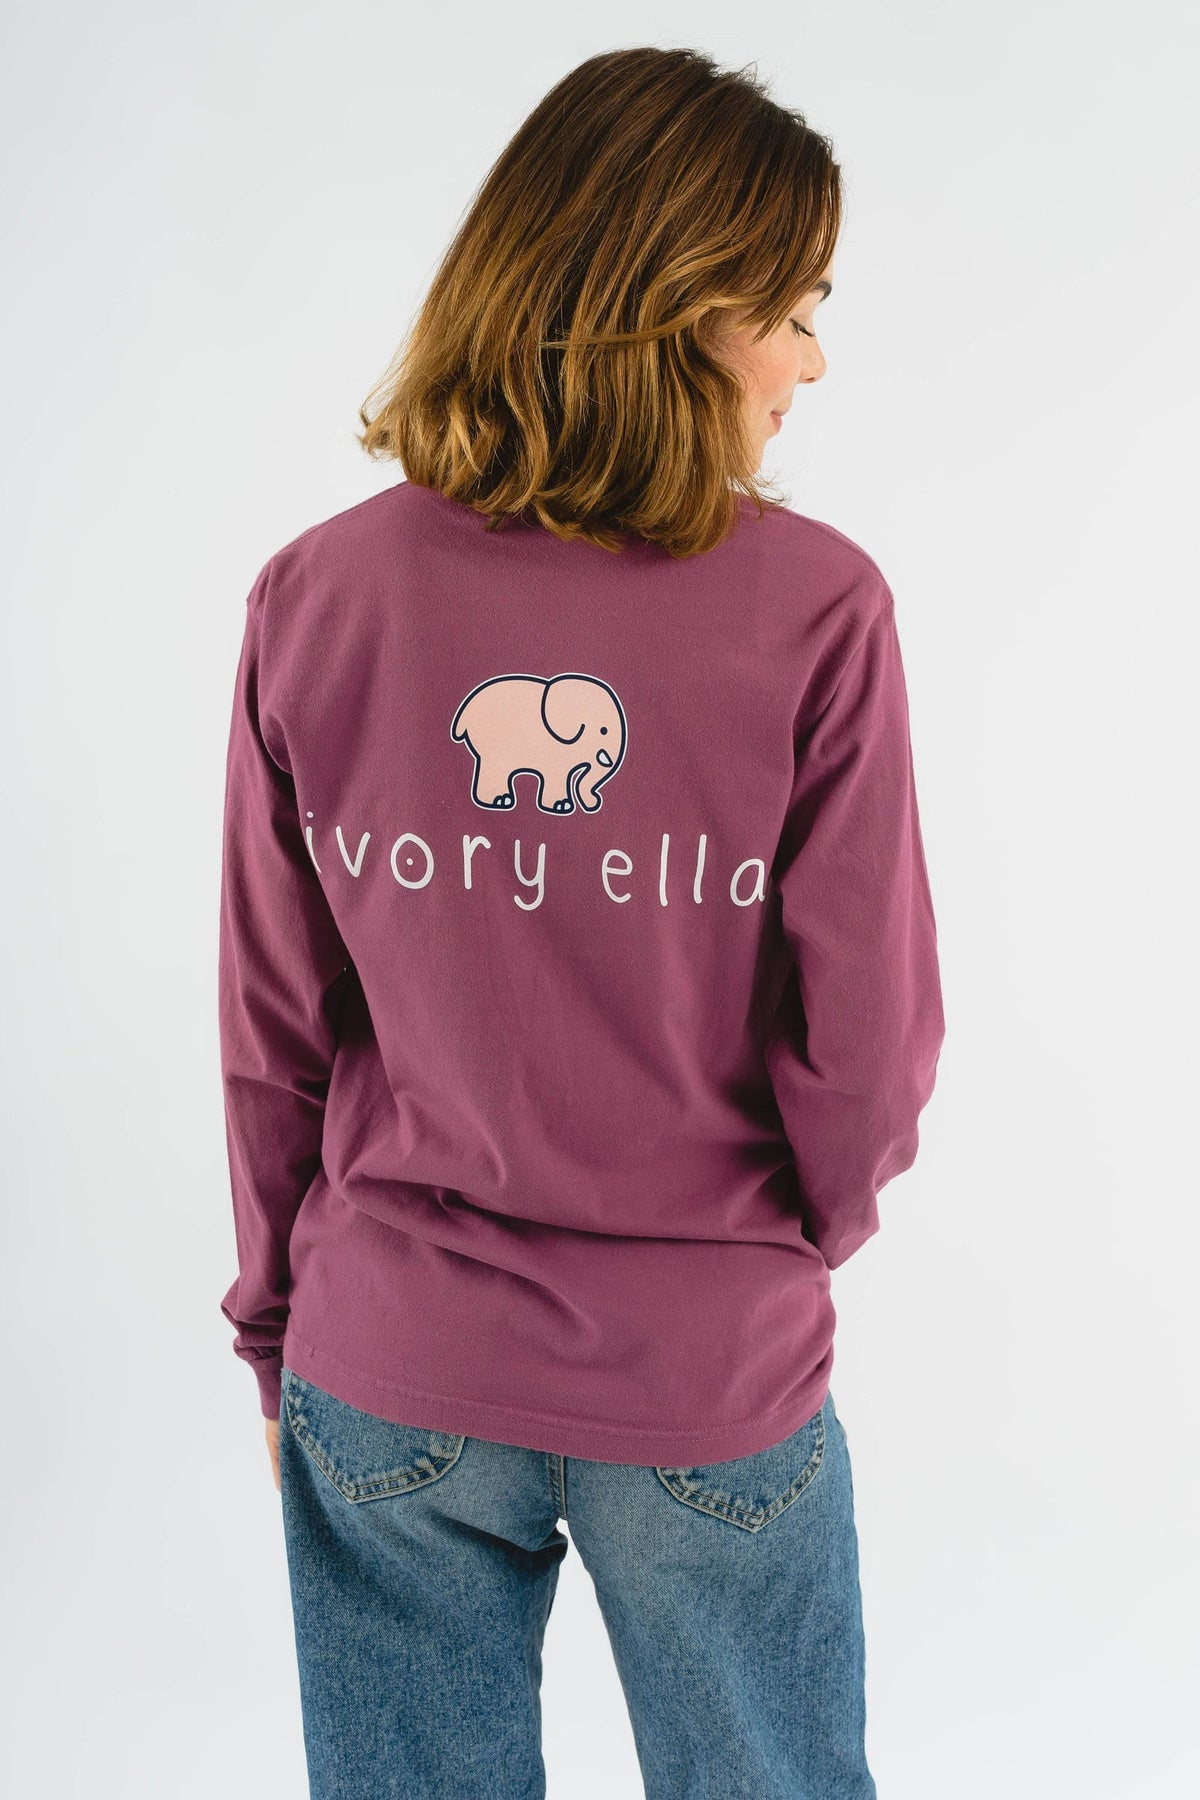 Ivory Ella Women's Long Sleeve Shirts S Classic Fit Berry Signature Logo